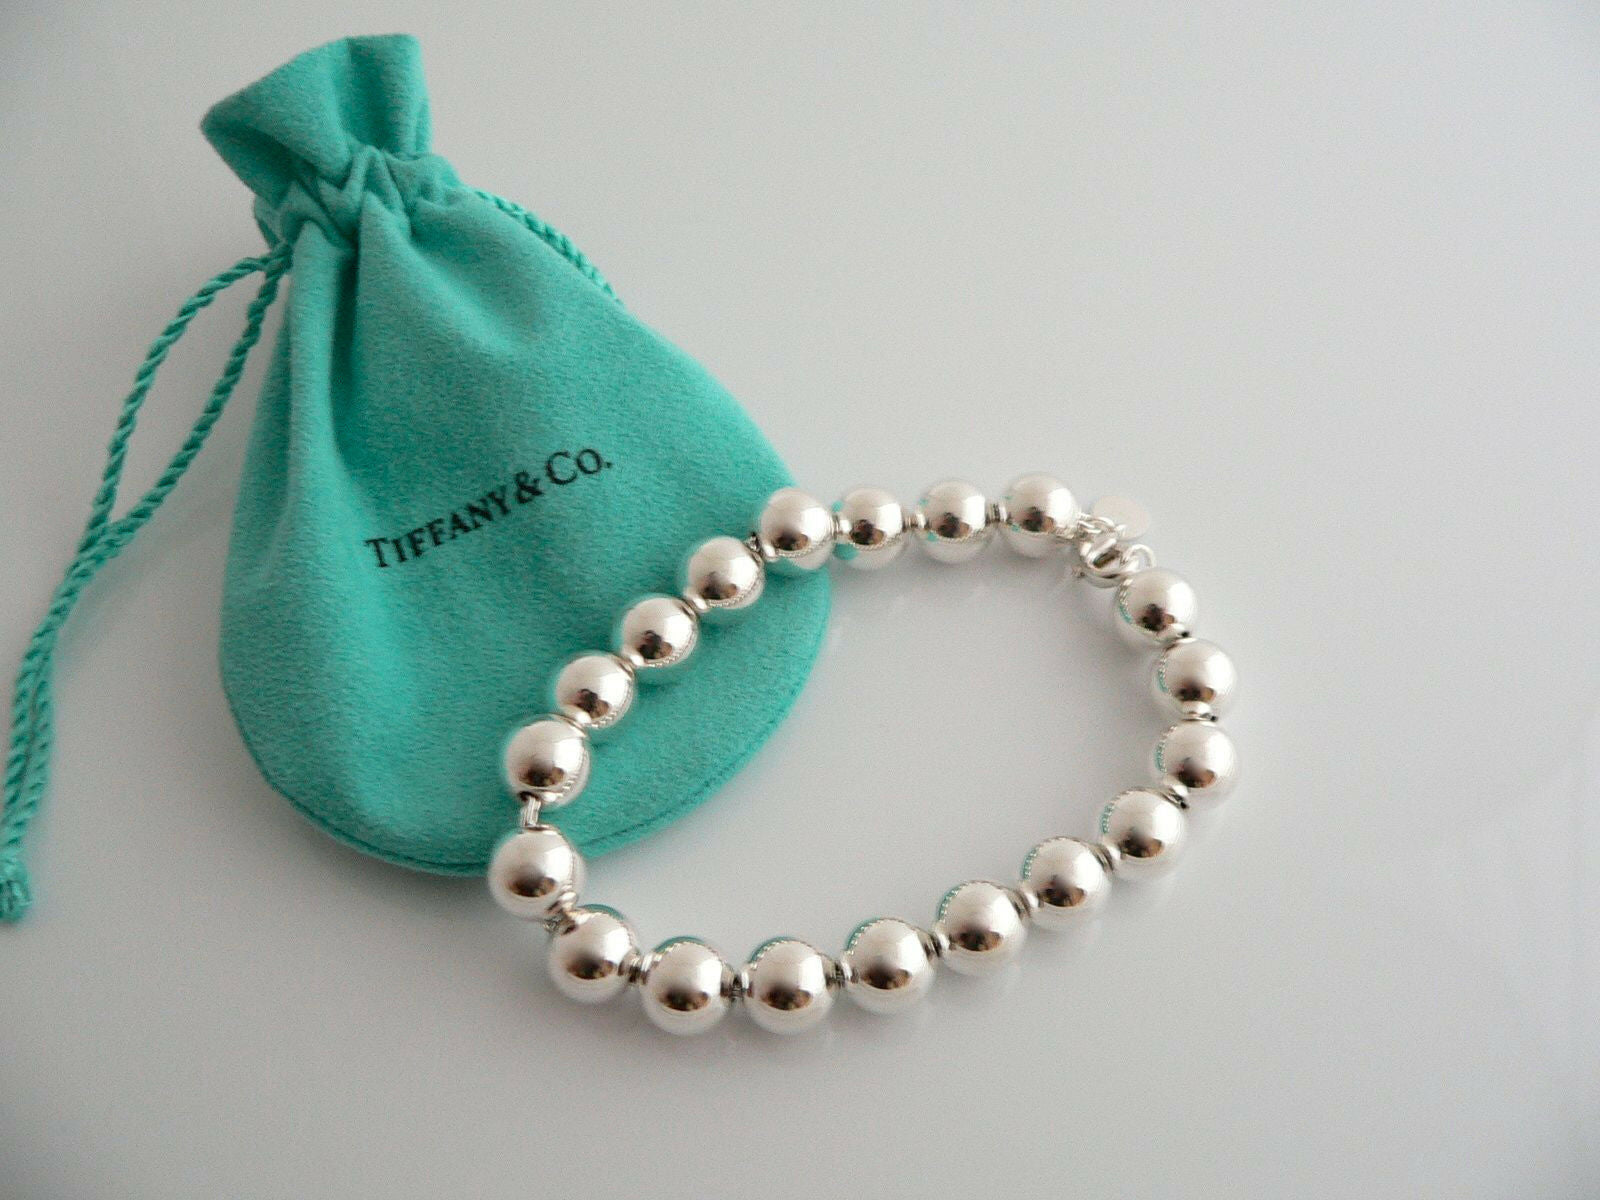 Tiffany & Co Silver Ball Bead Bracelet Bangle 8.3 Inch Longer Length Gift Pouch